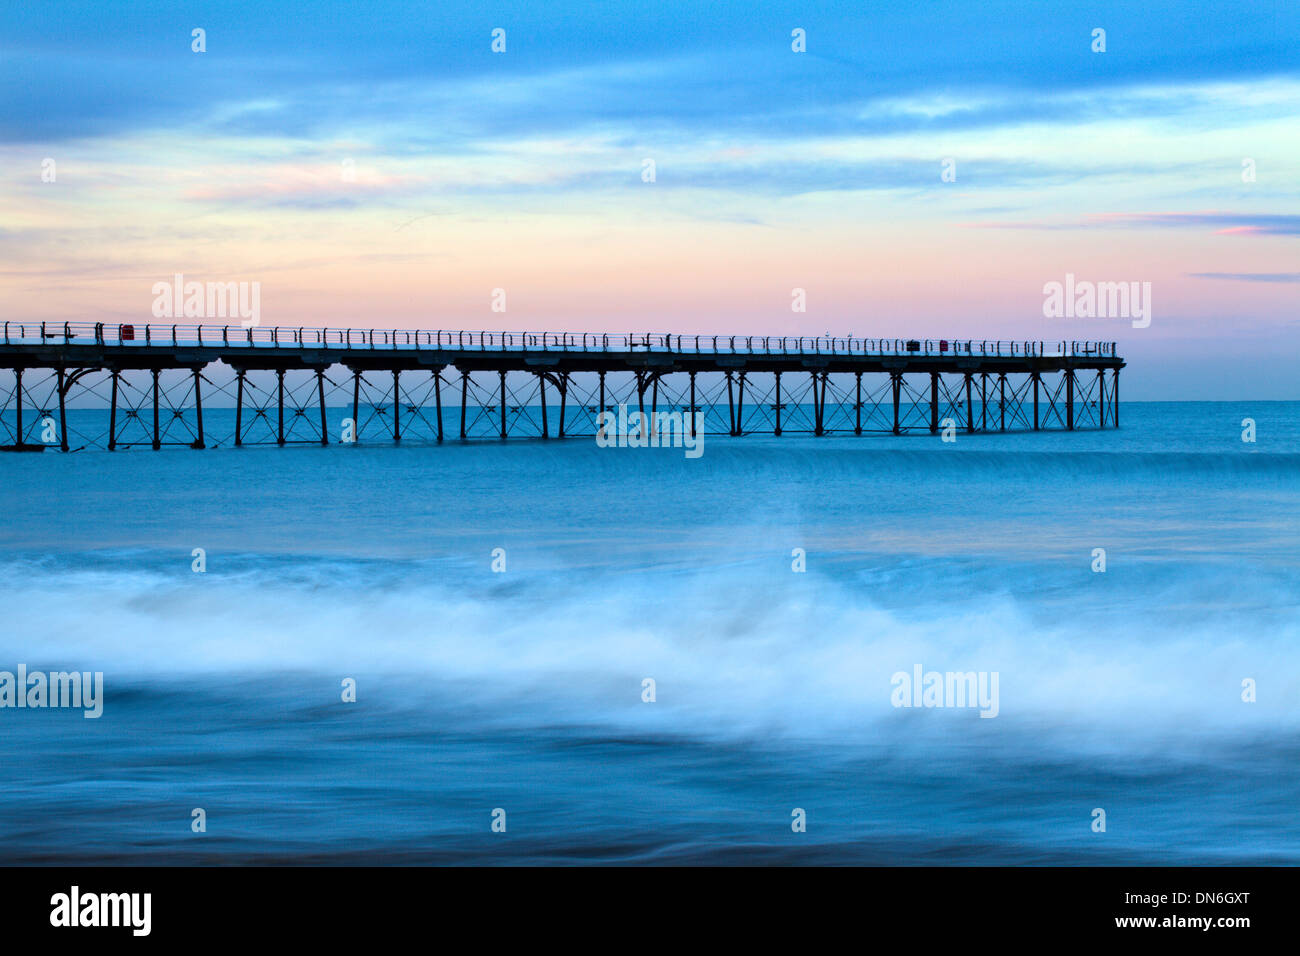 Breaking Wave at Saltburn Pier Saltburn by the Sea Redcar and Cleveland England - Stock Image